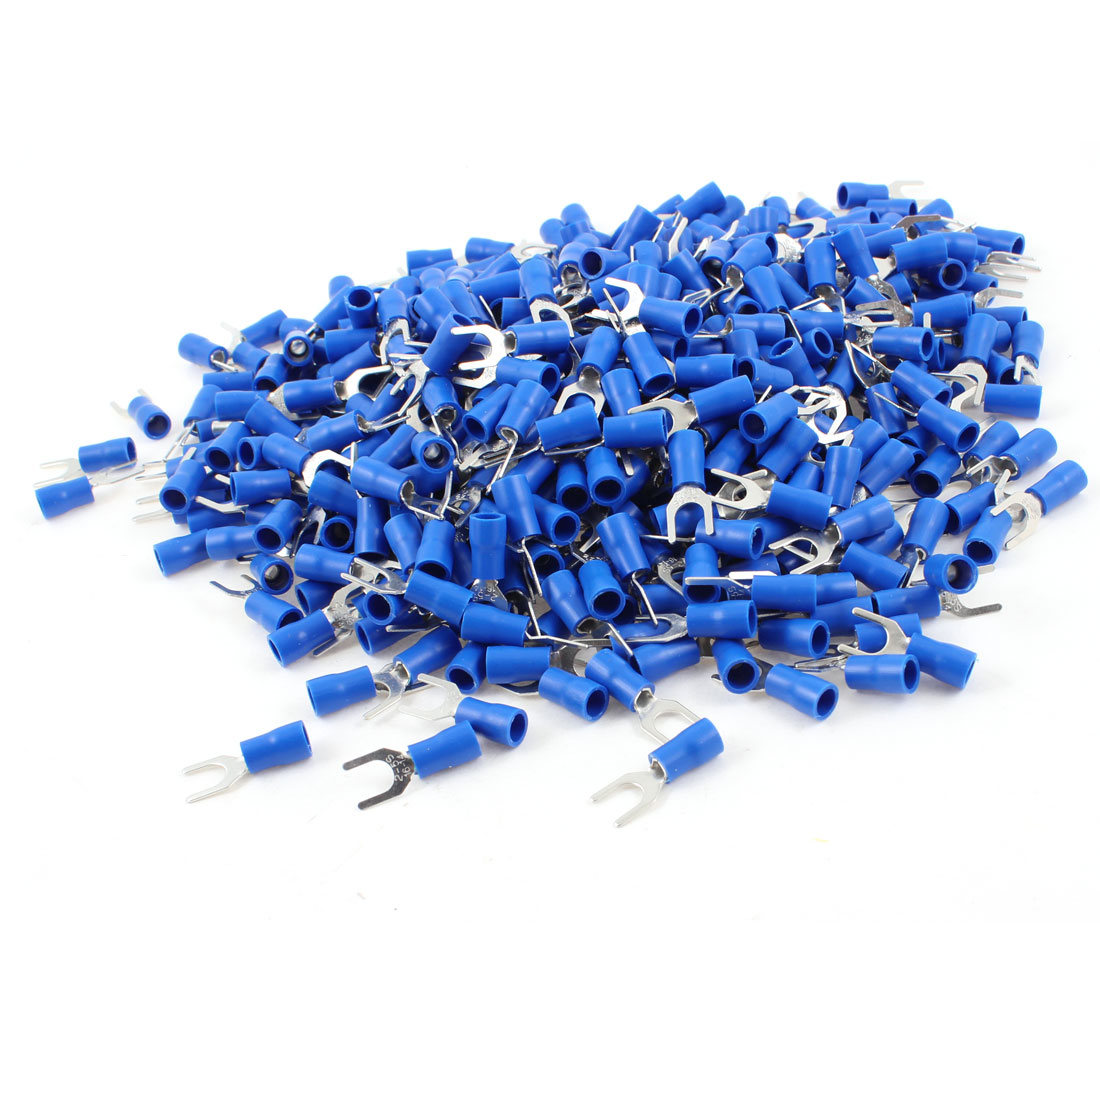 1000 Pcs SV2-5S Blue Pre Insulated Fork Terminals for AWG 16-14 Wire #10 Stud